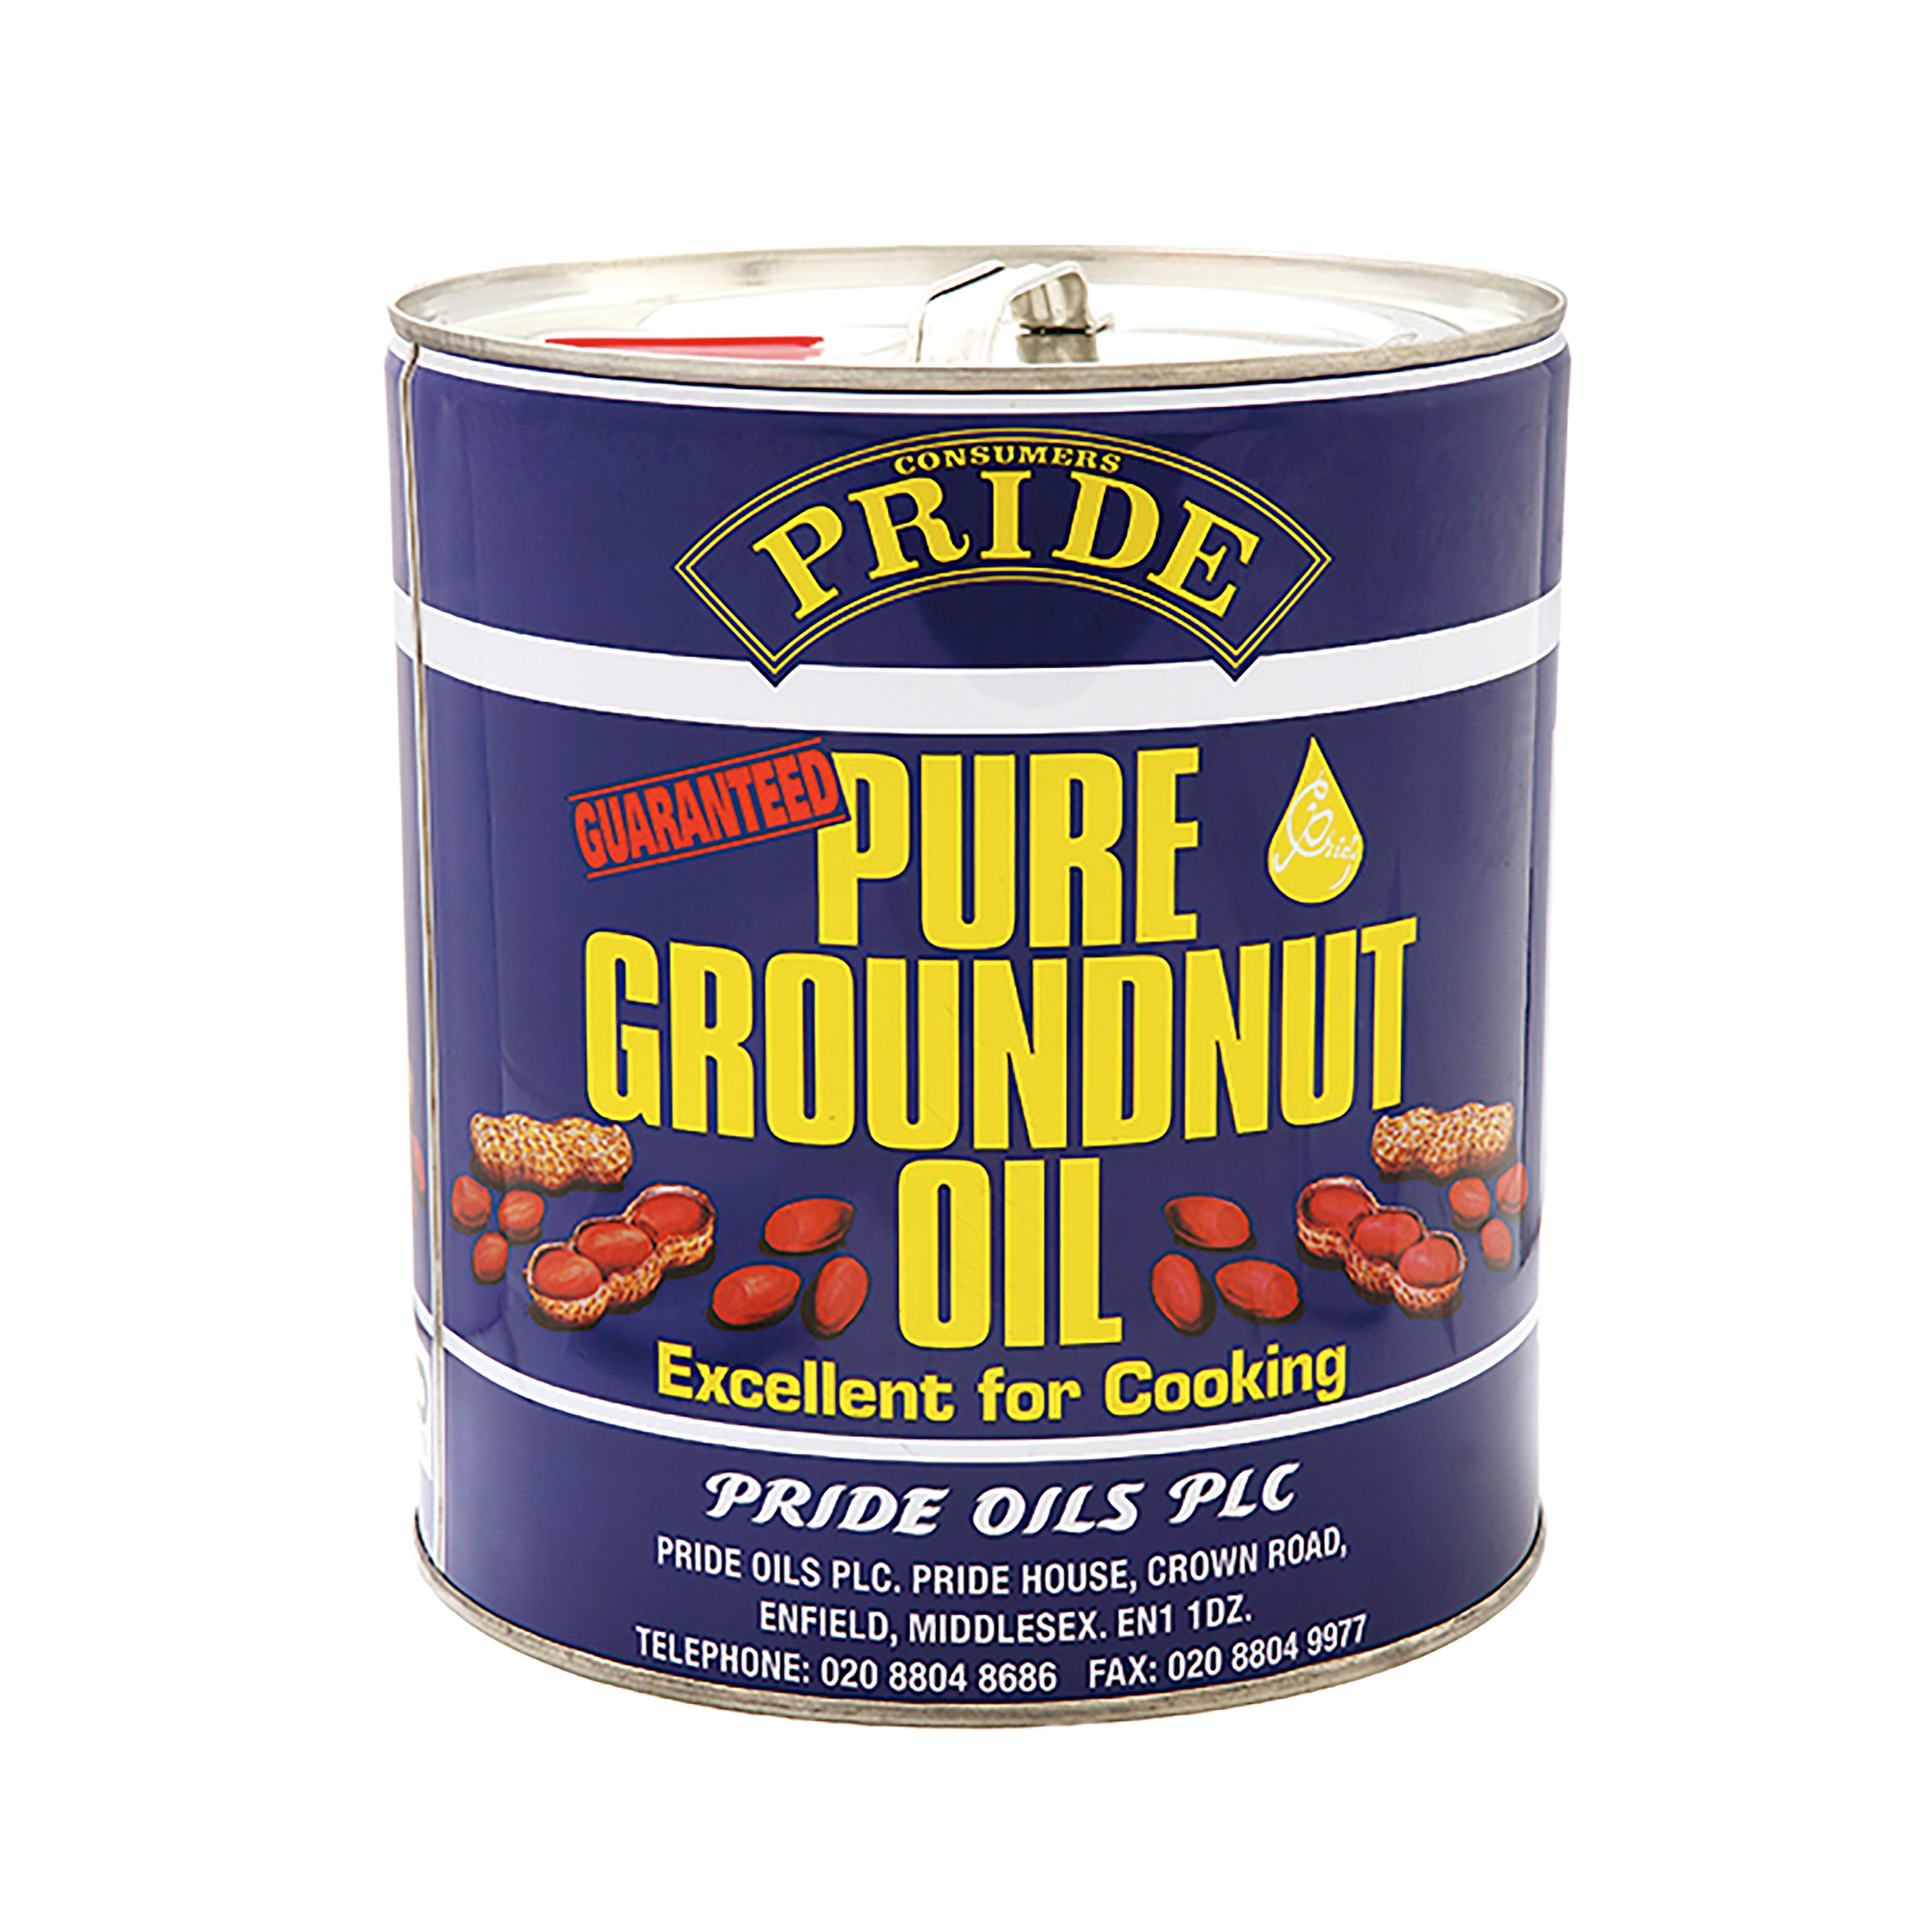 Pride-Pure-Groundnut-Oil-1x15L - Manchester Branch - JJ Food Service